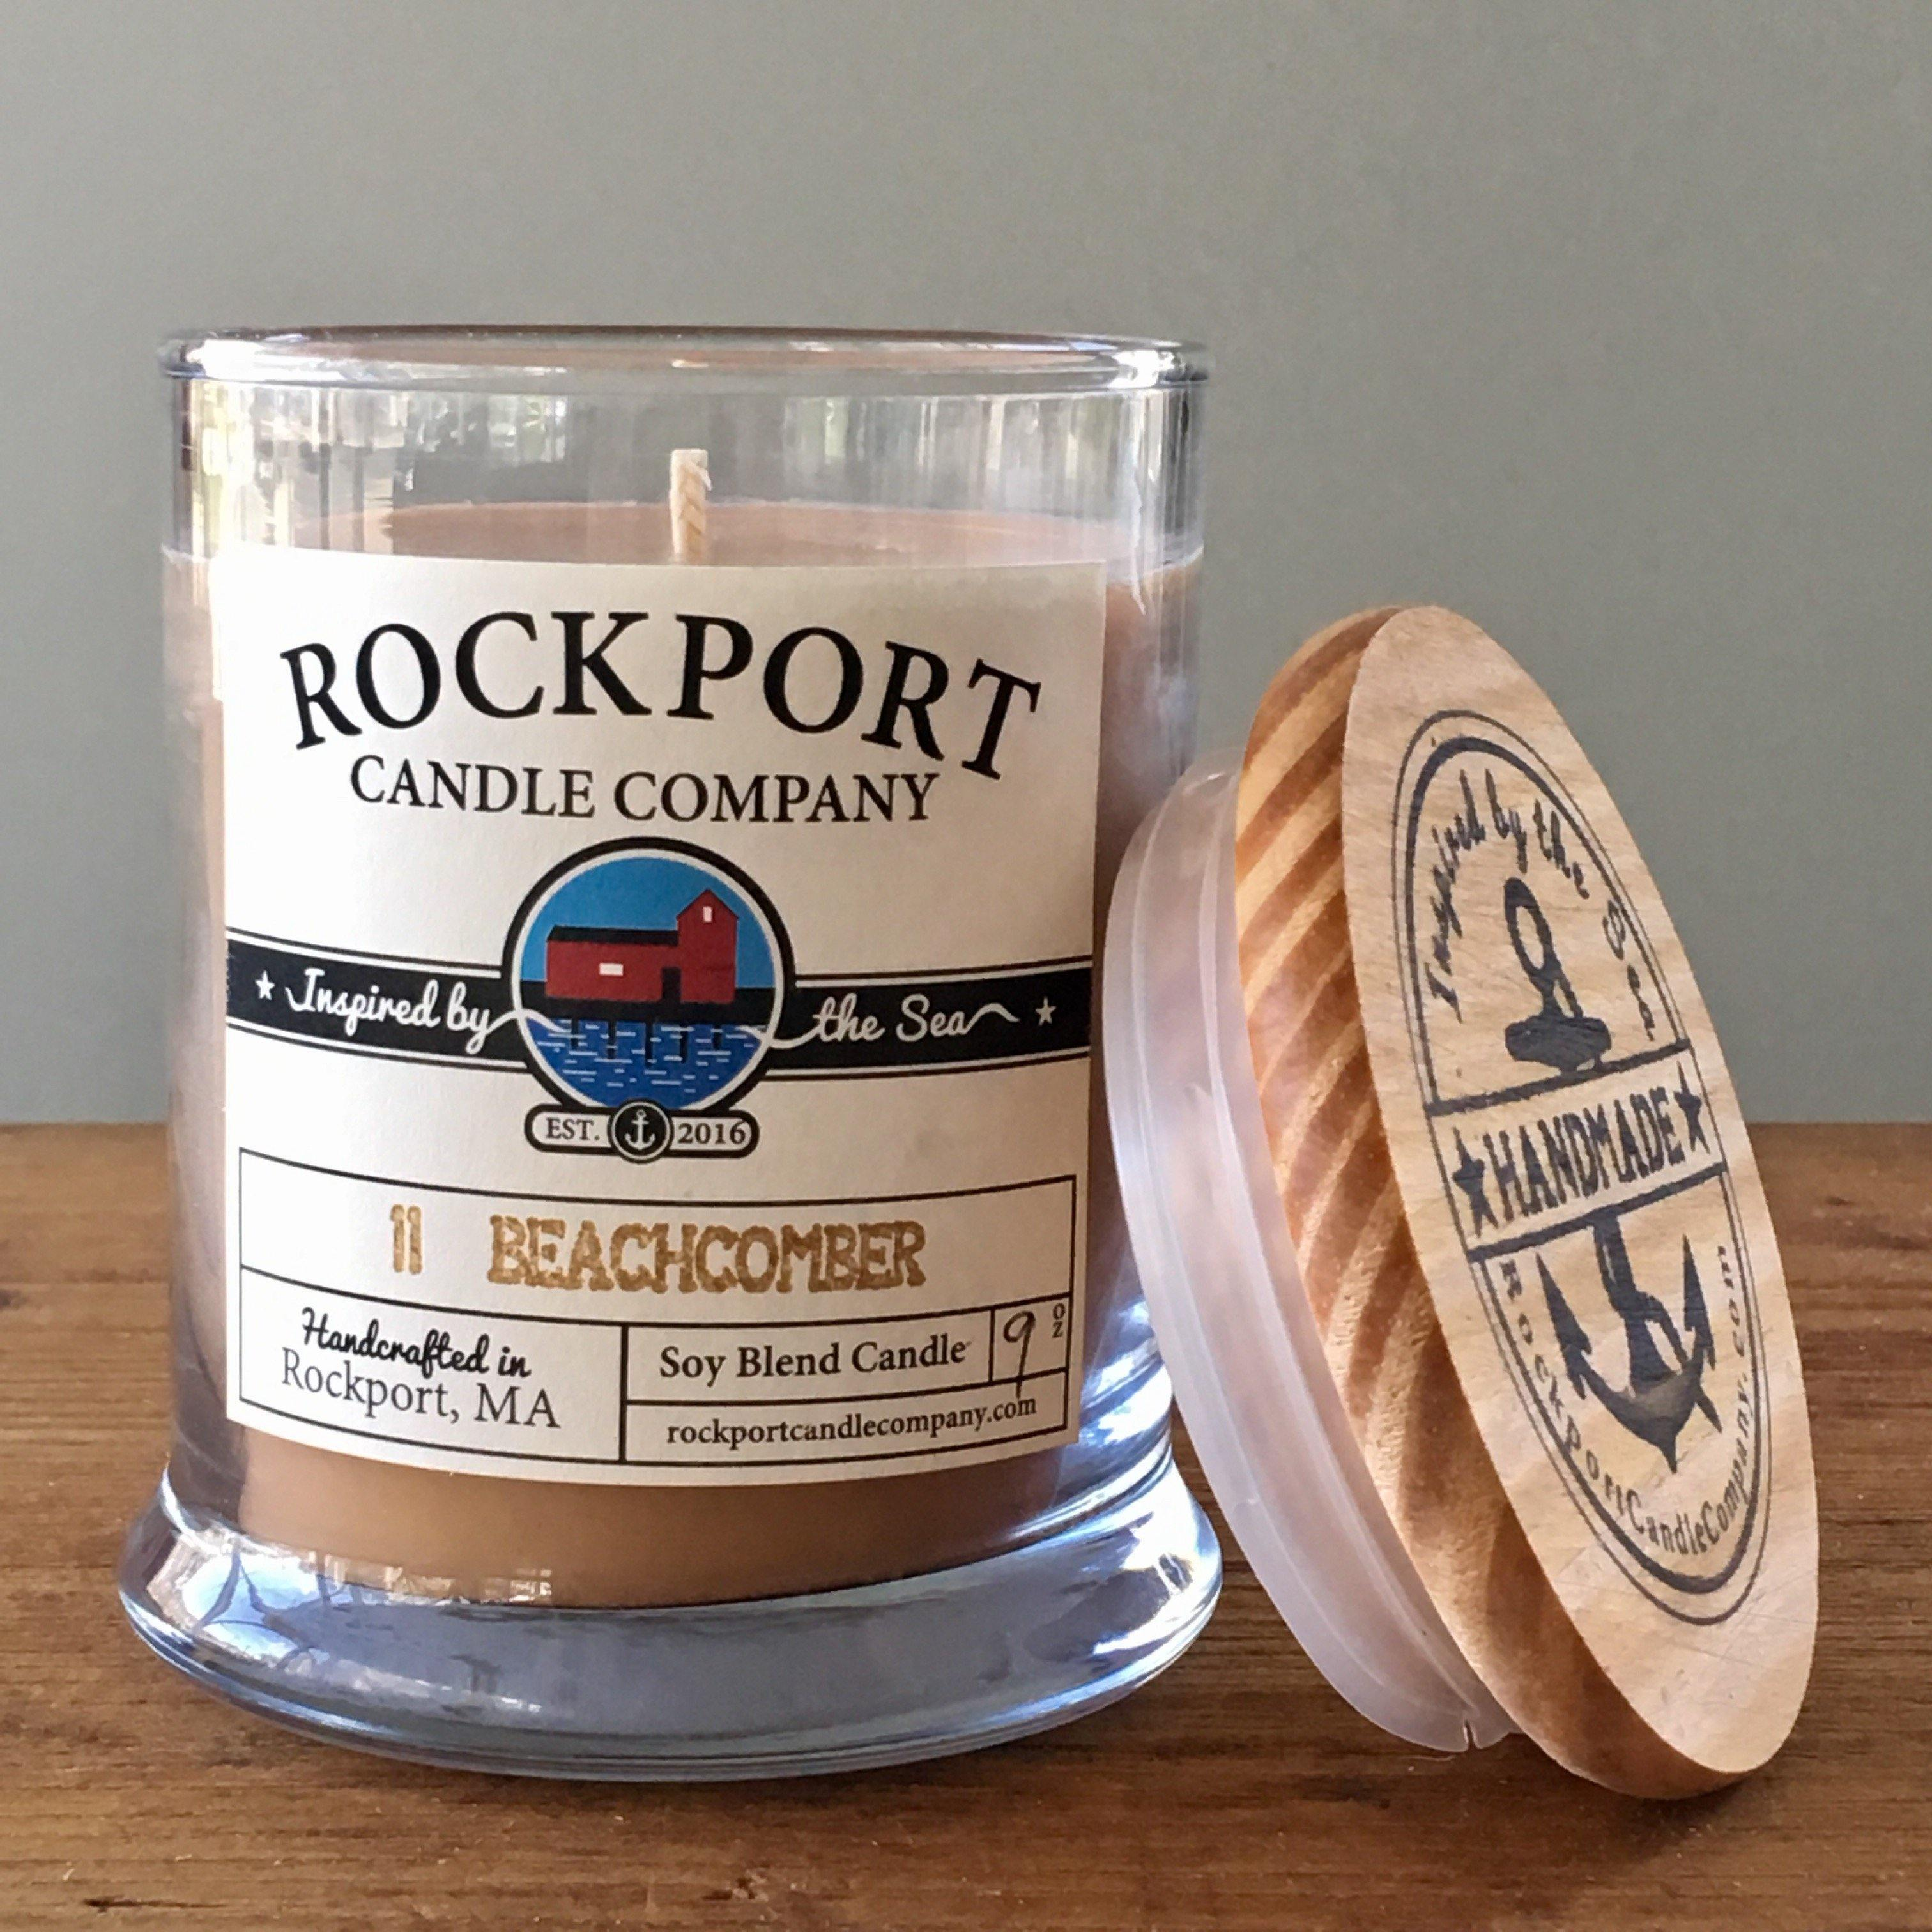 11 Beachcomber Candle Rockport Candle Company